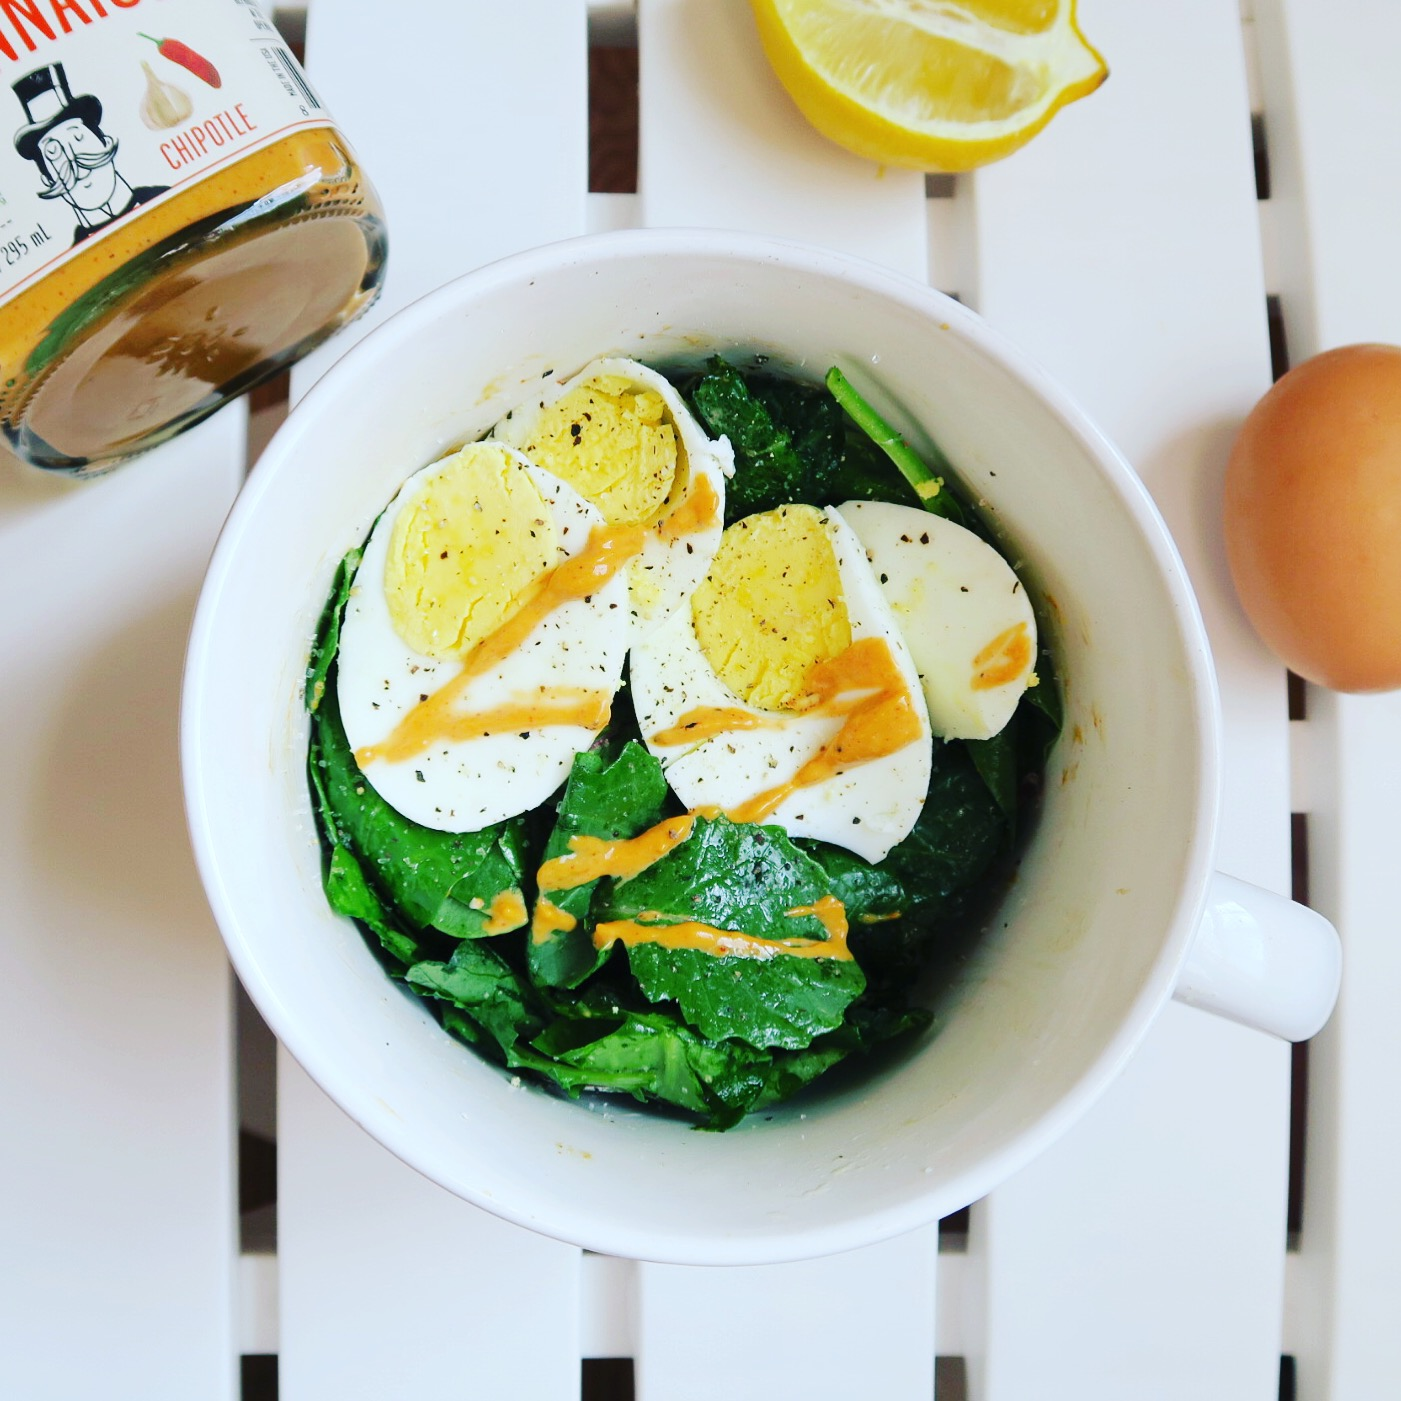 Chipotle Smoked Eggs and Greens